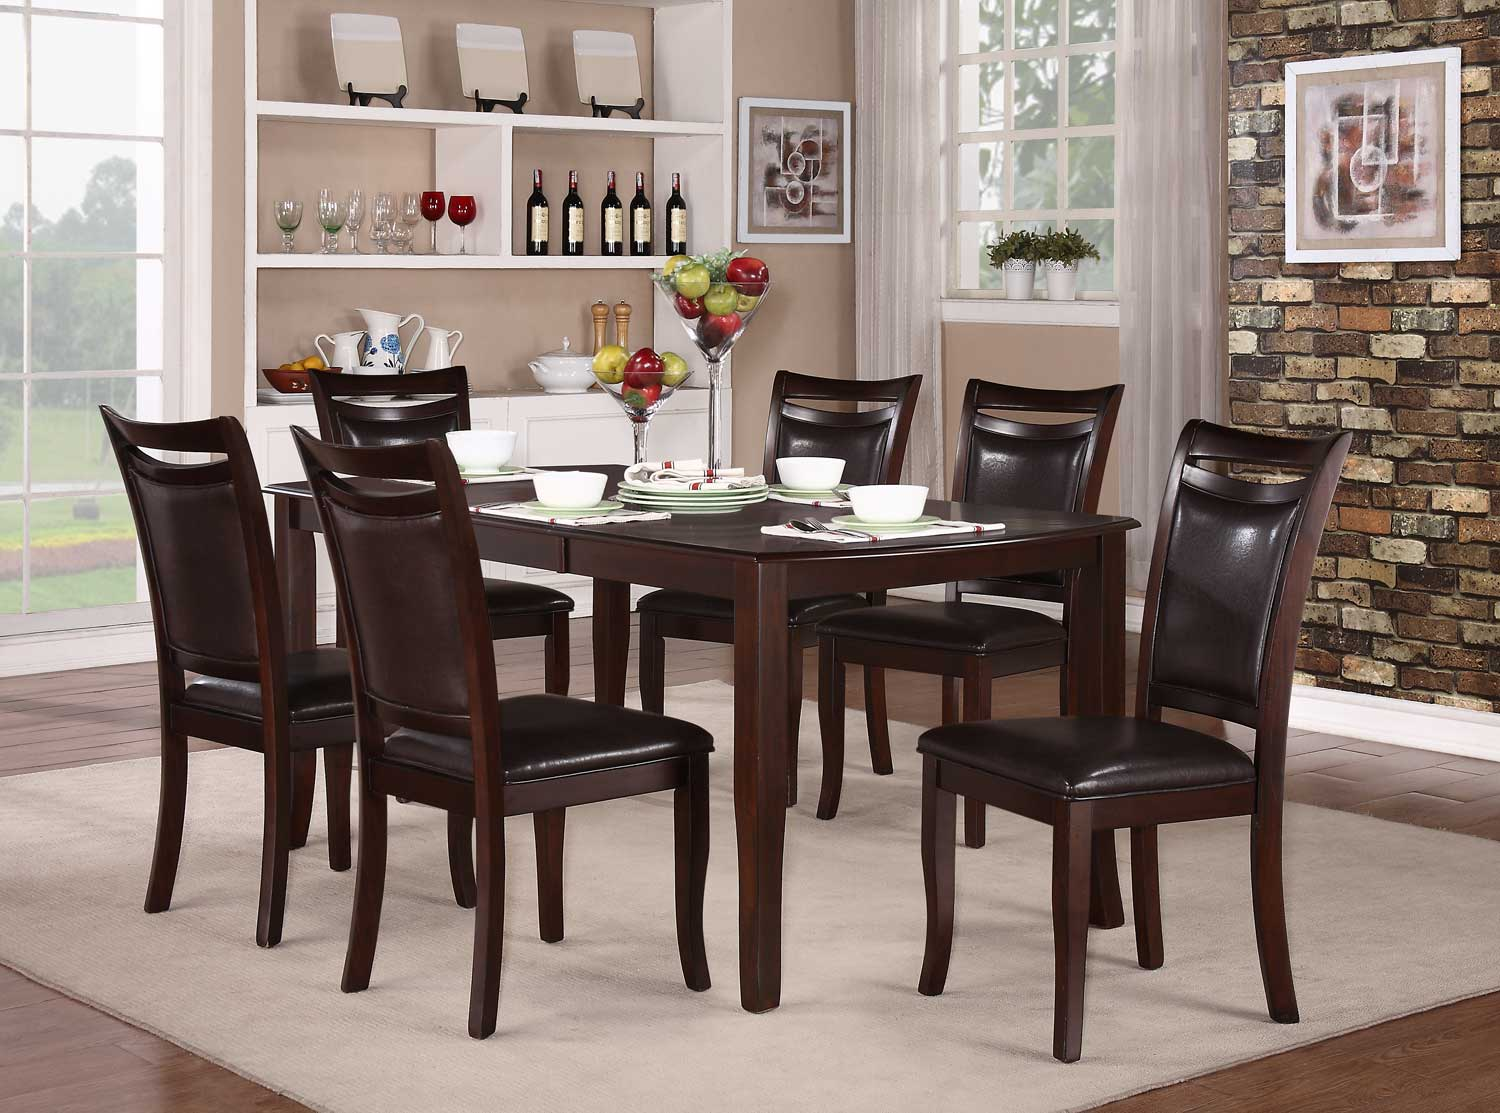 Homelegance Maeve Dining Set - Dark Cherry